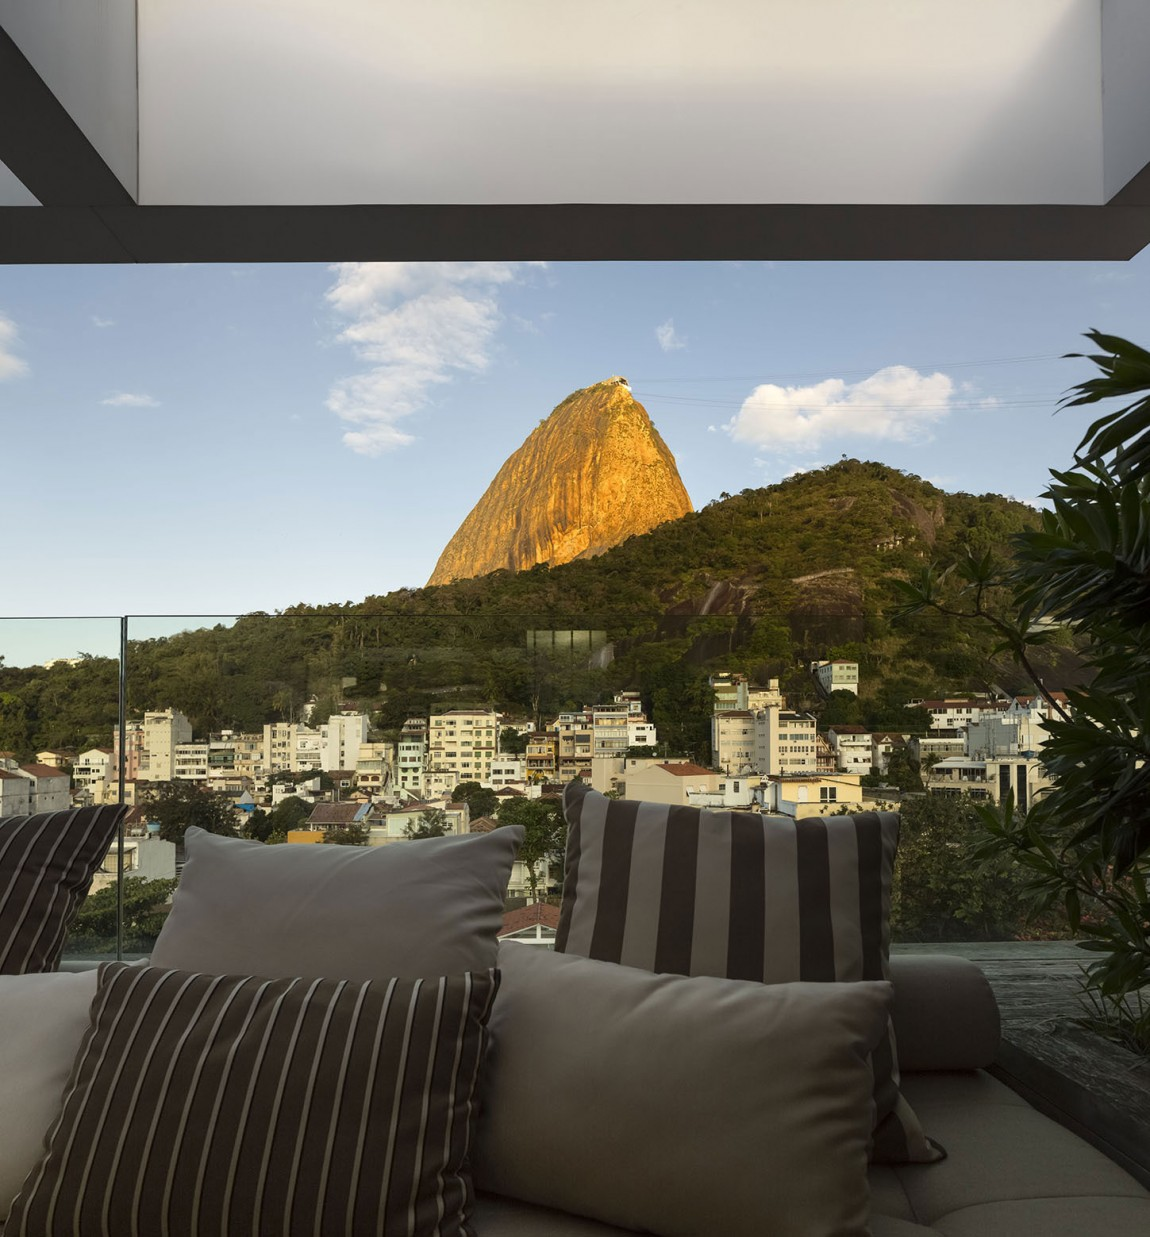 View from the relaxed balcony of the Rio home